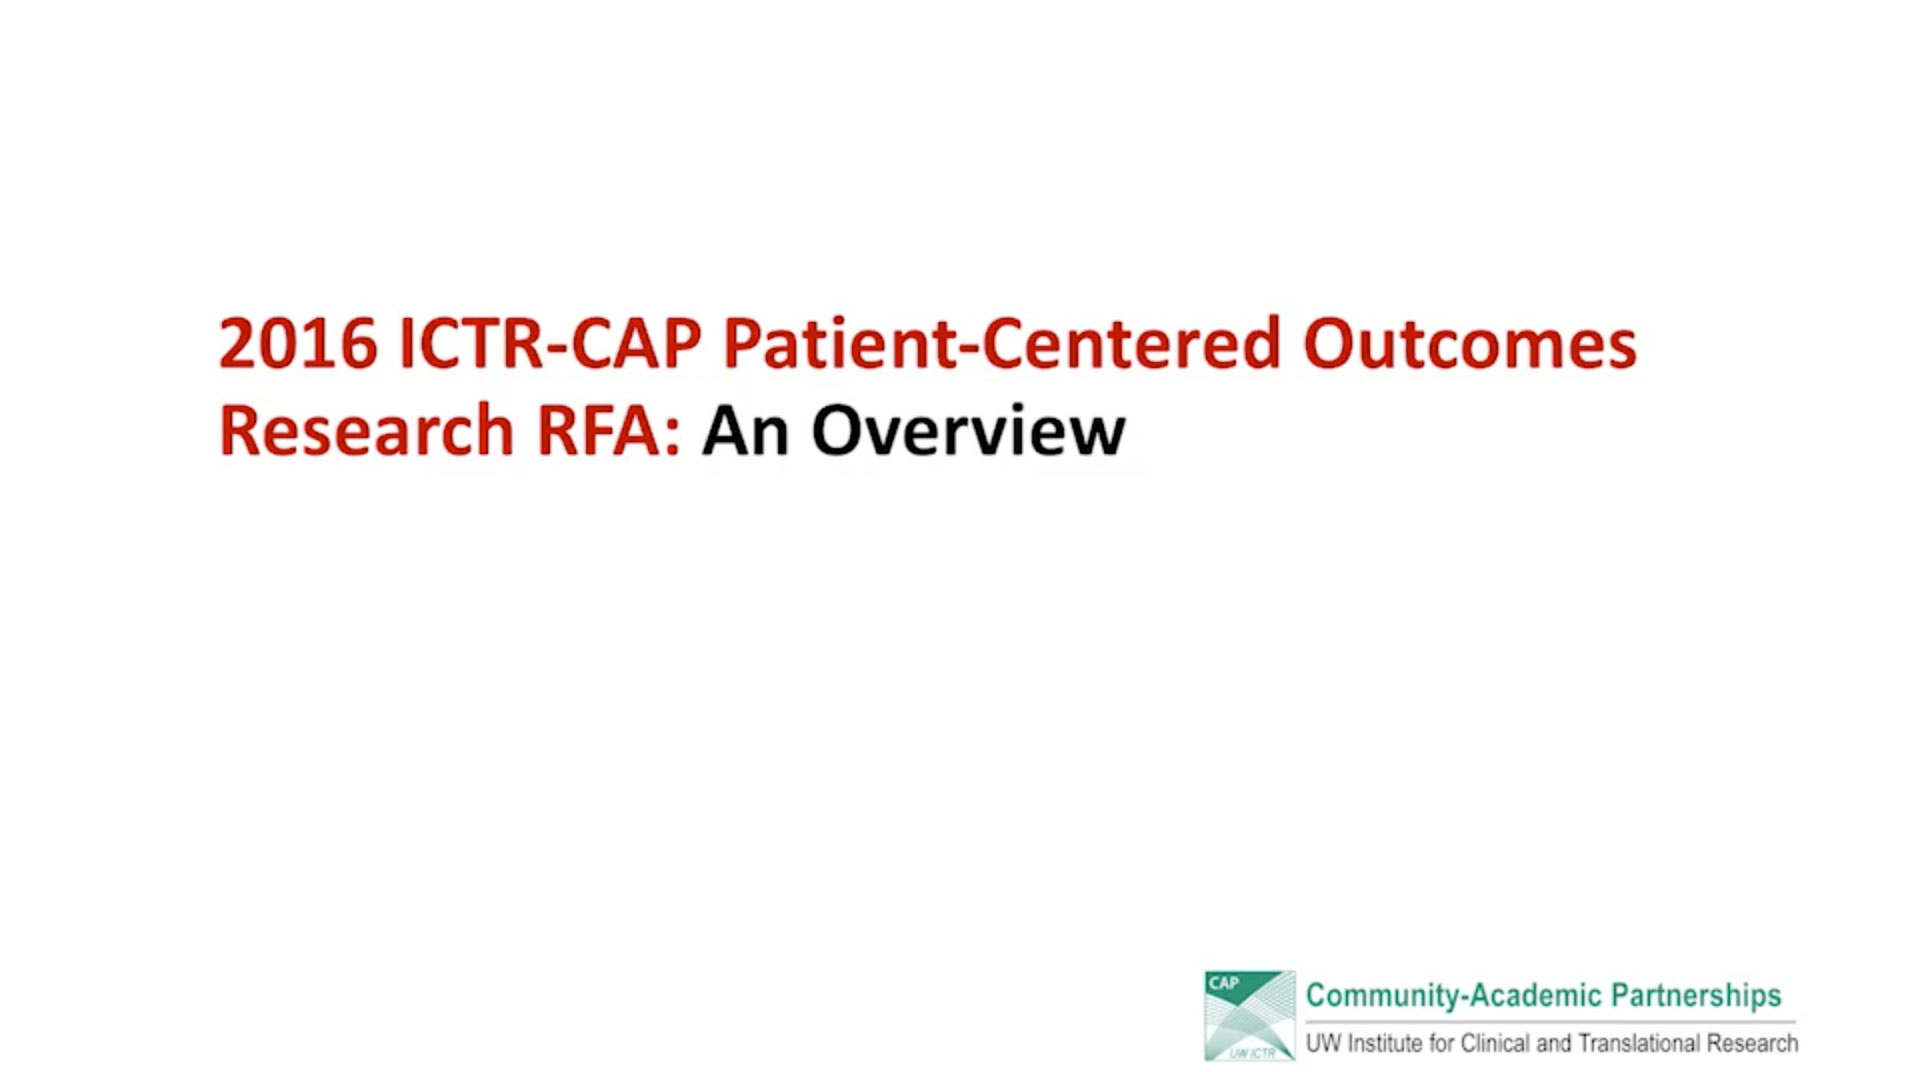 Picture from 2016 ICTR-CAP Patient-Centered Outcomes Research RFA: An Overview video